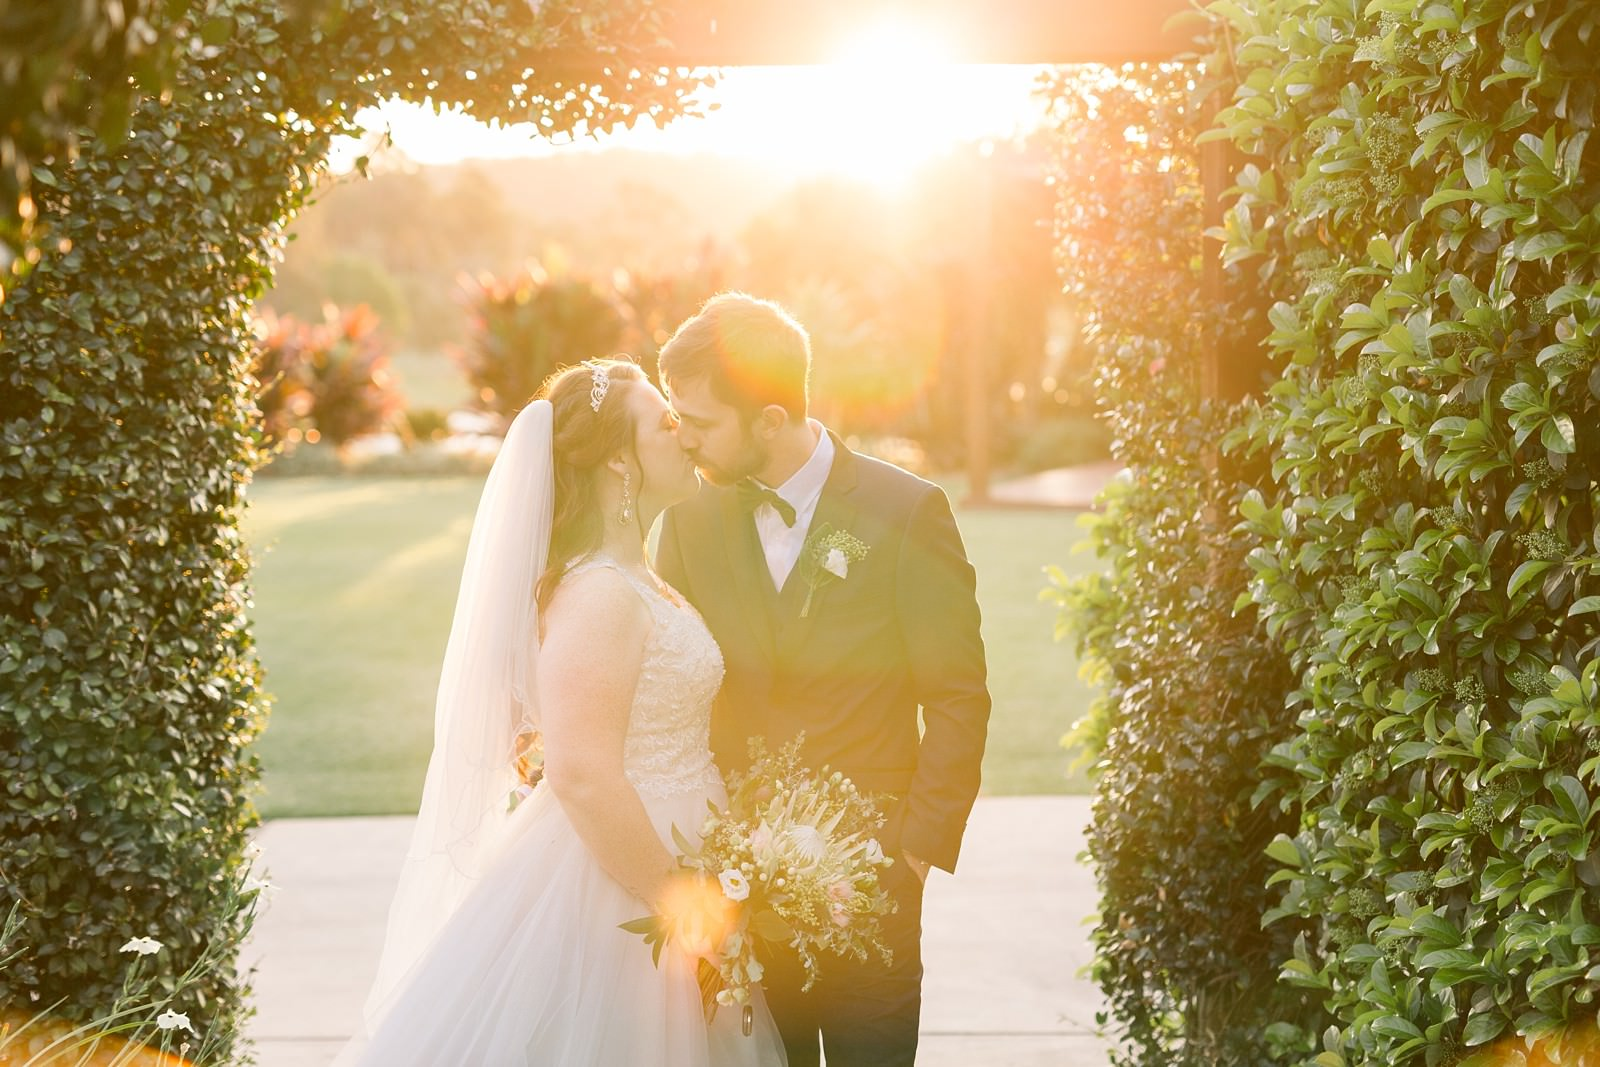 Parkwood Village wedding photographer